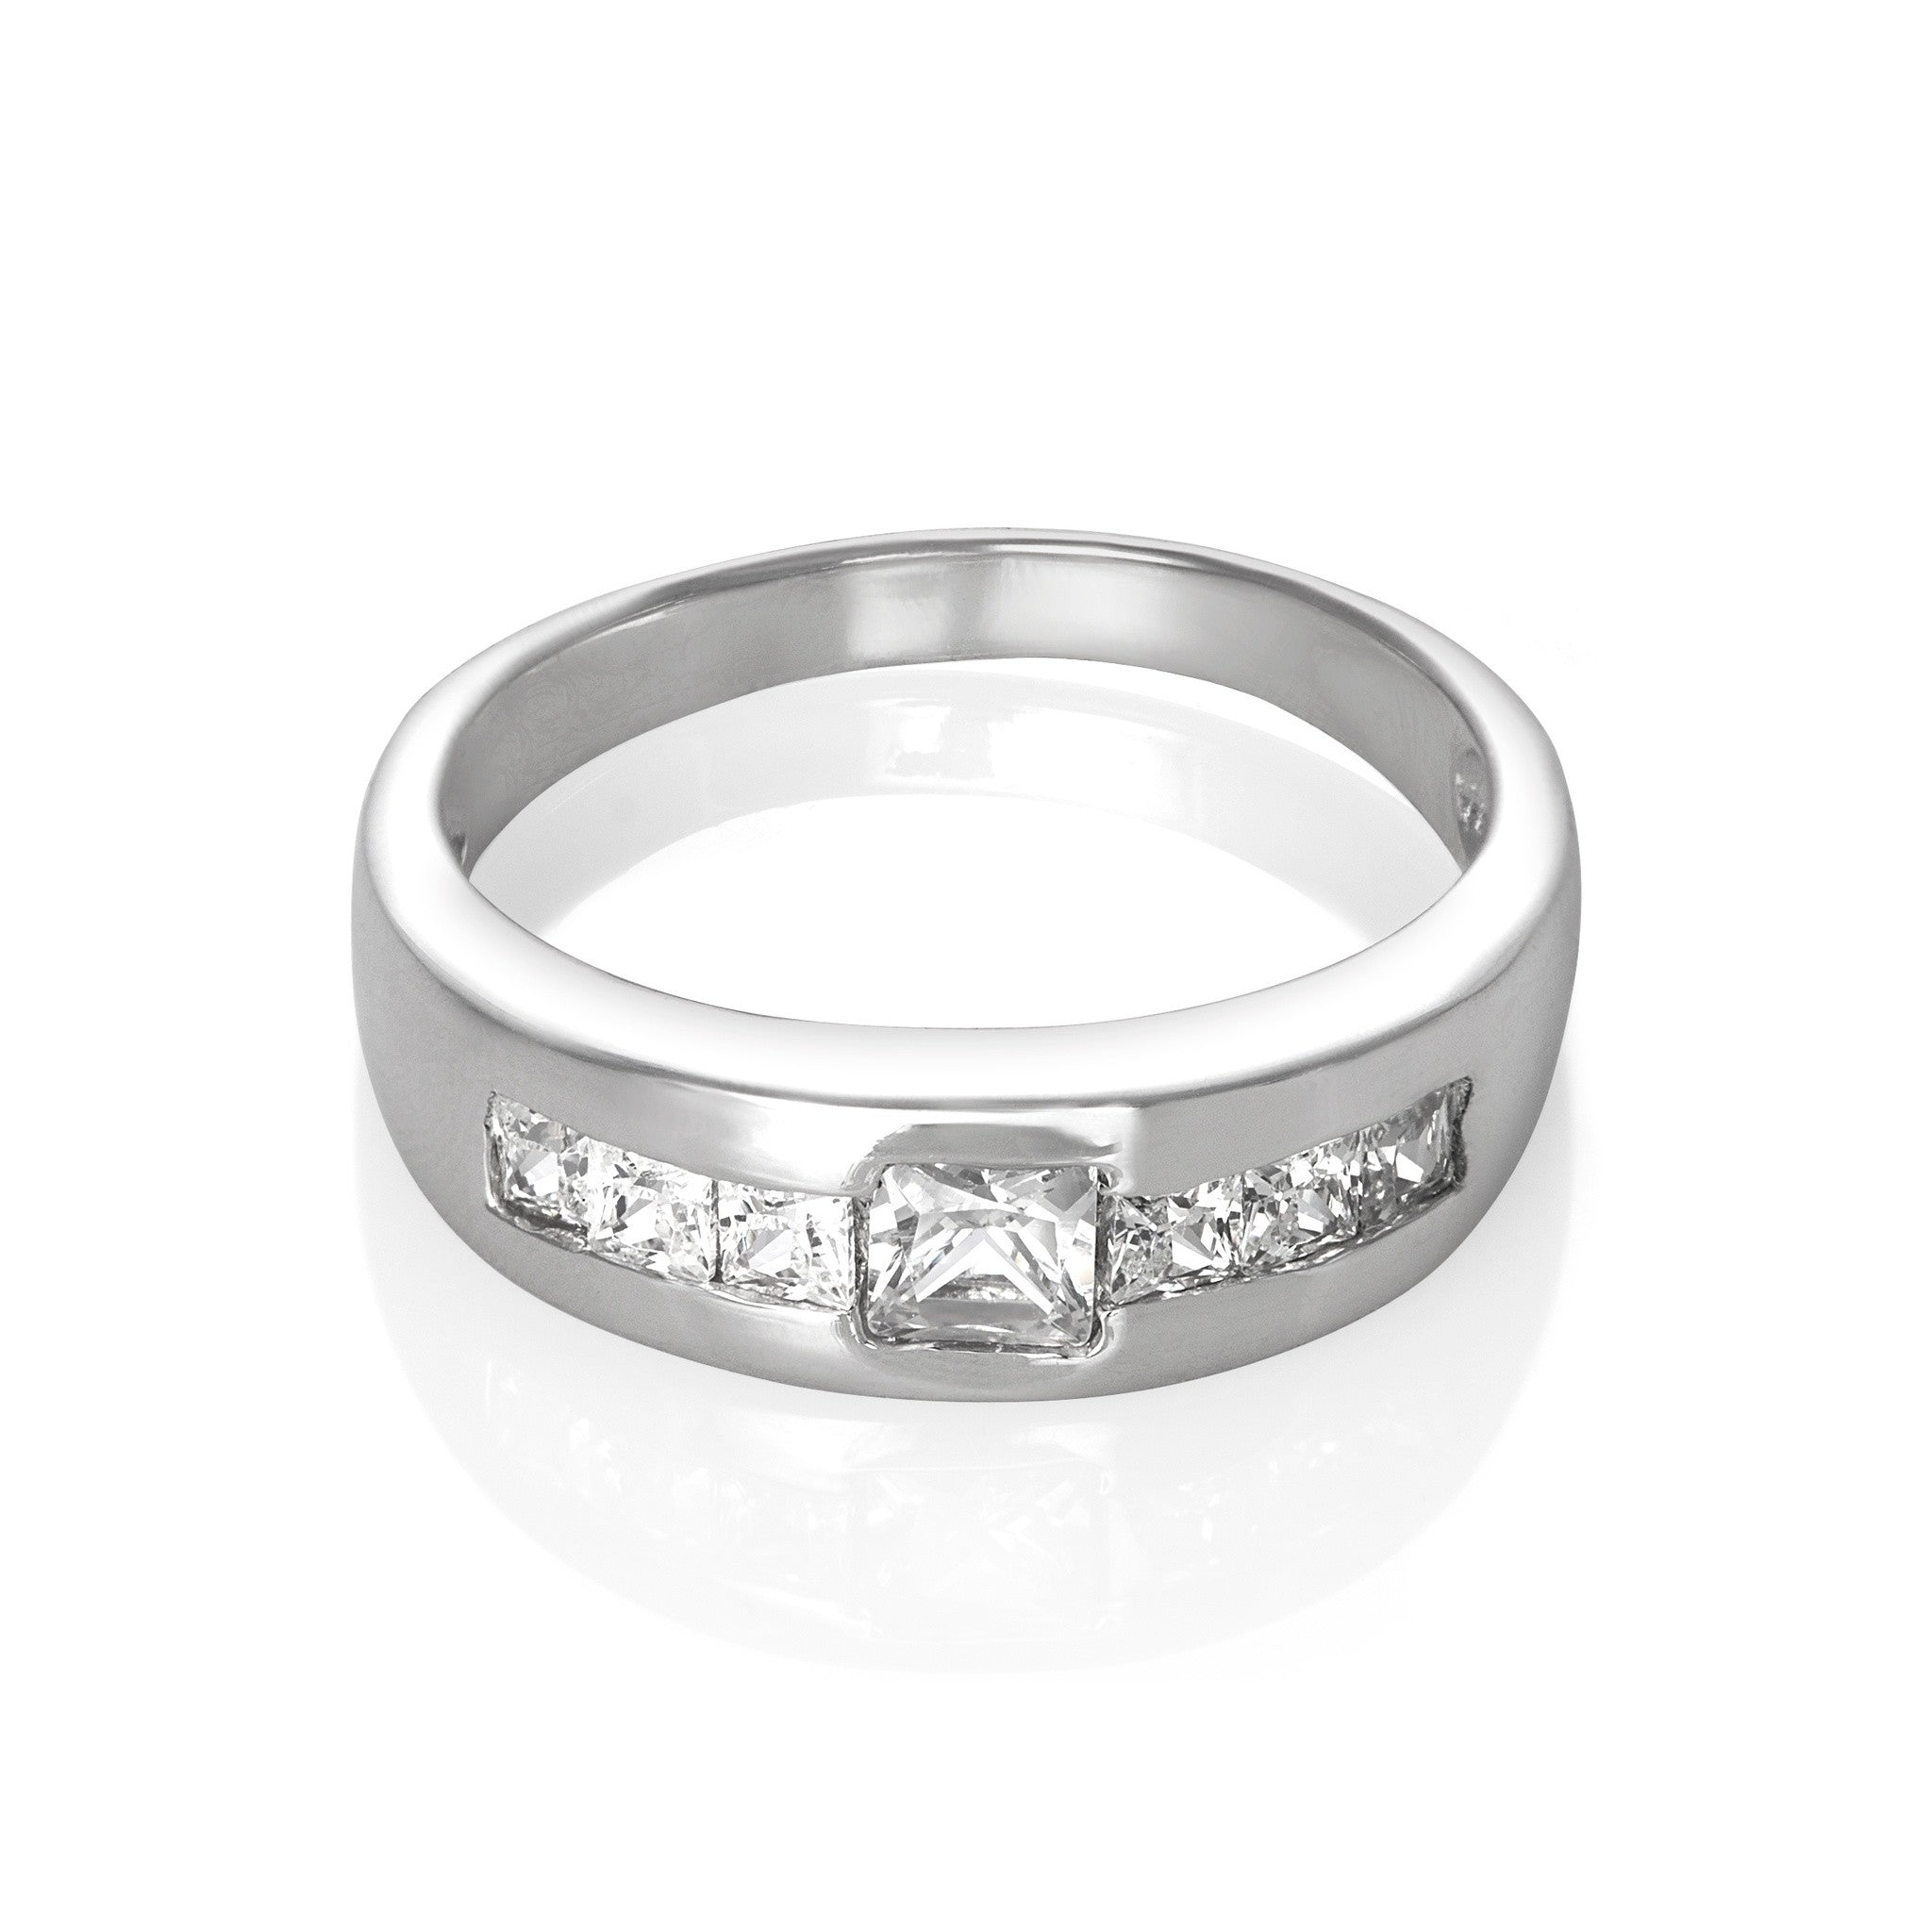 RZ-5710 Cubic Zirconia CZ Men's Ring | Teeda